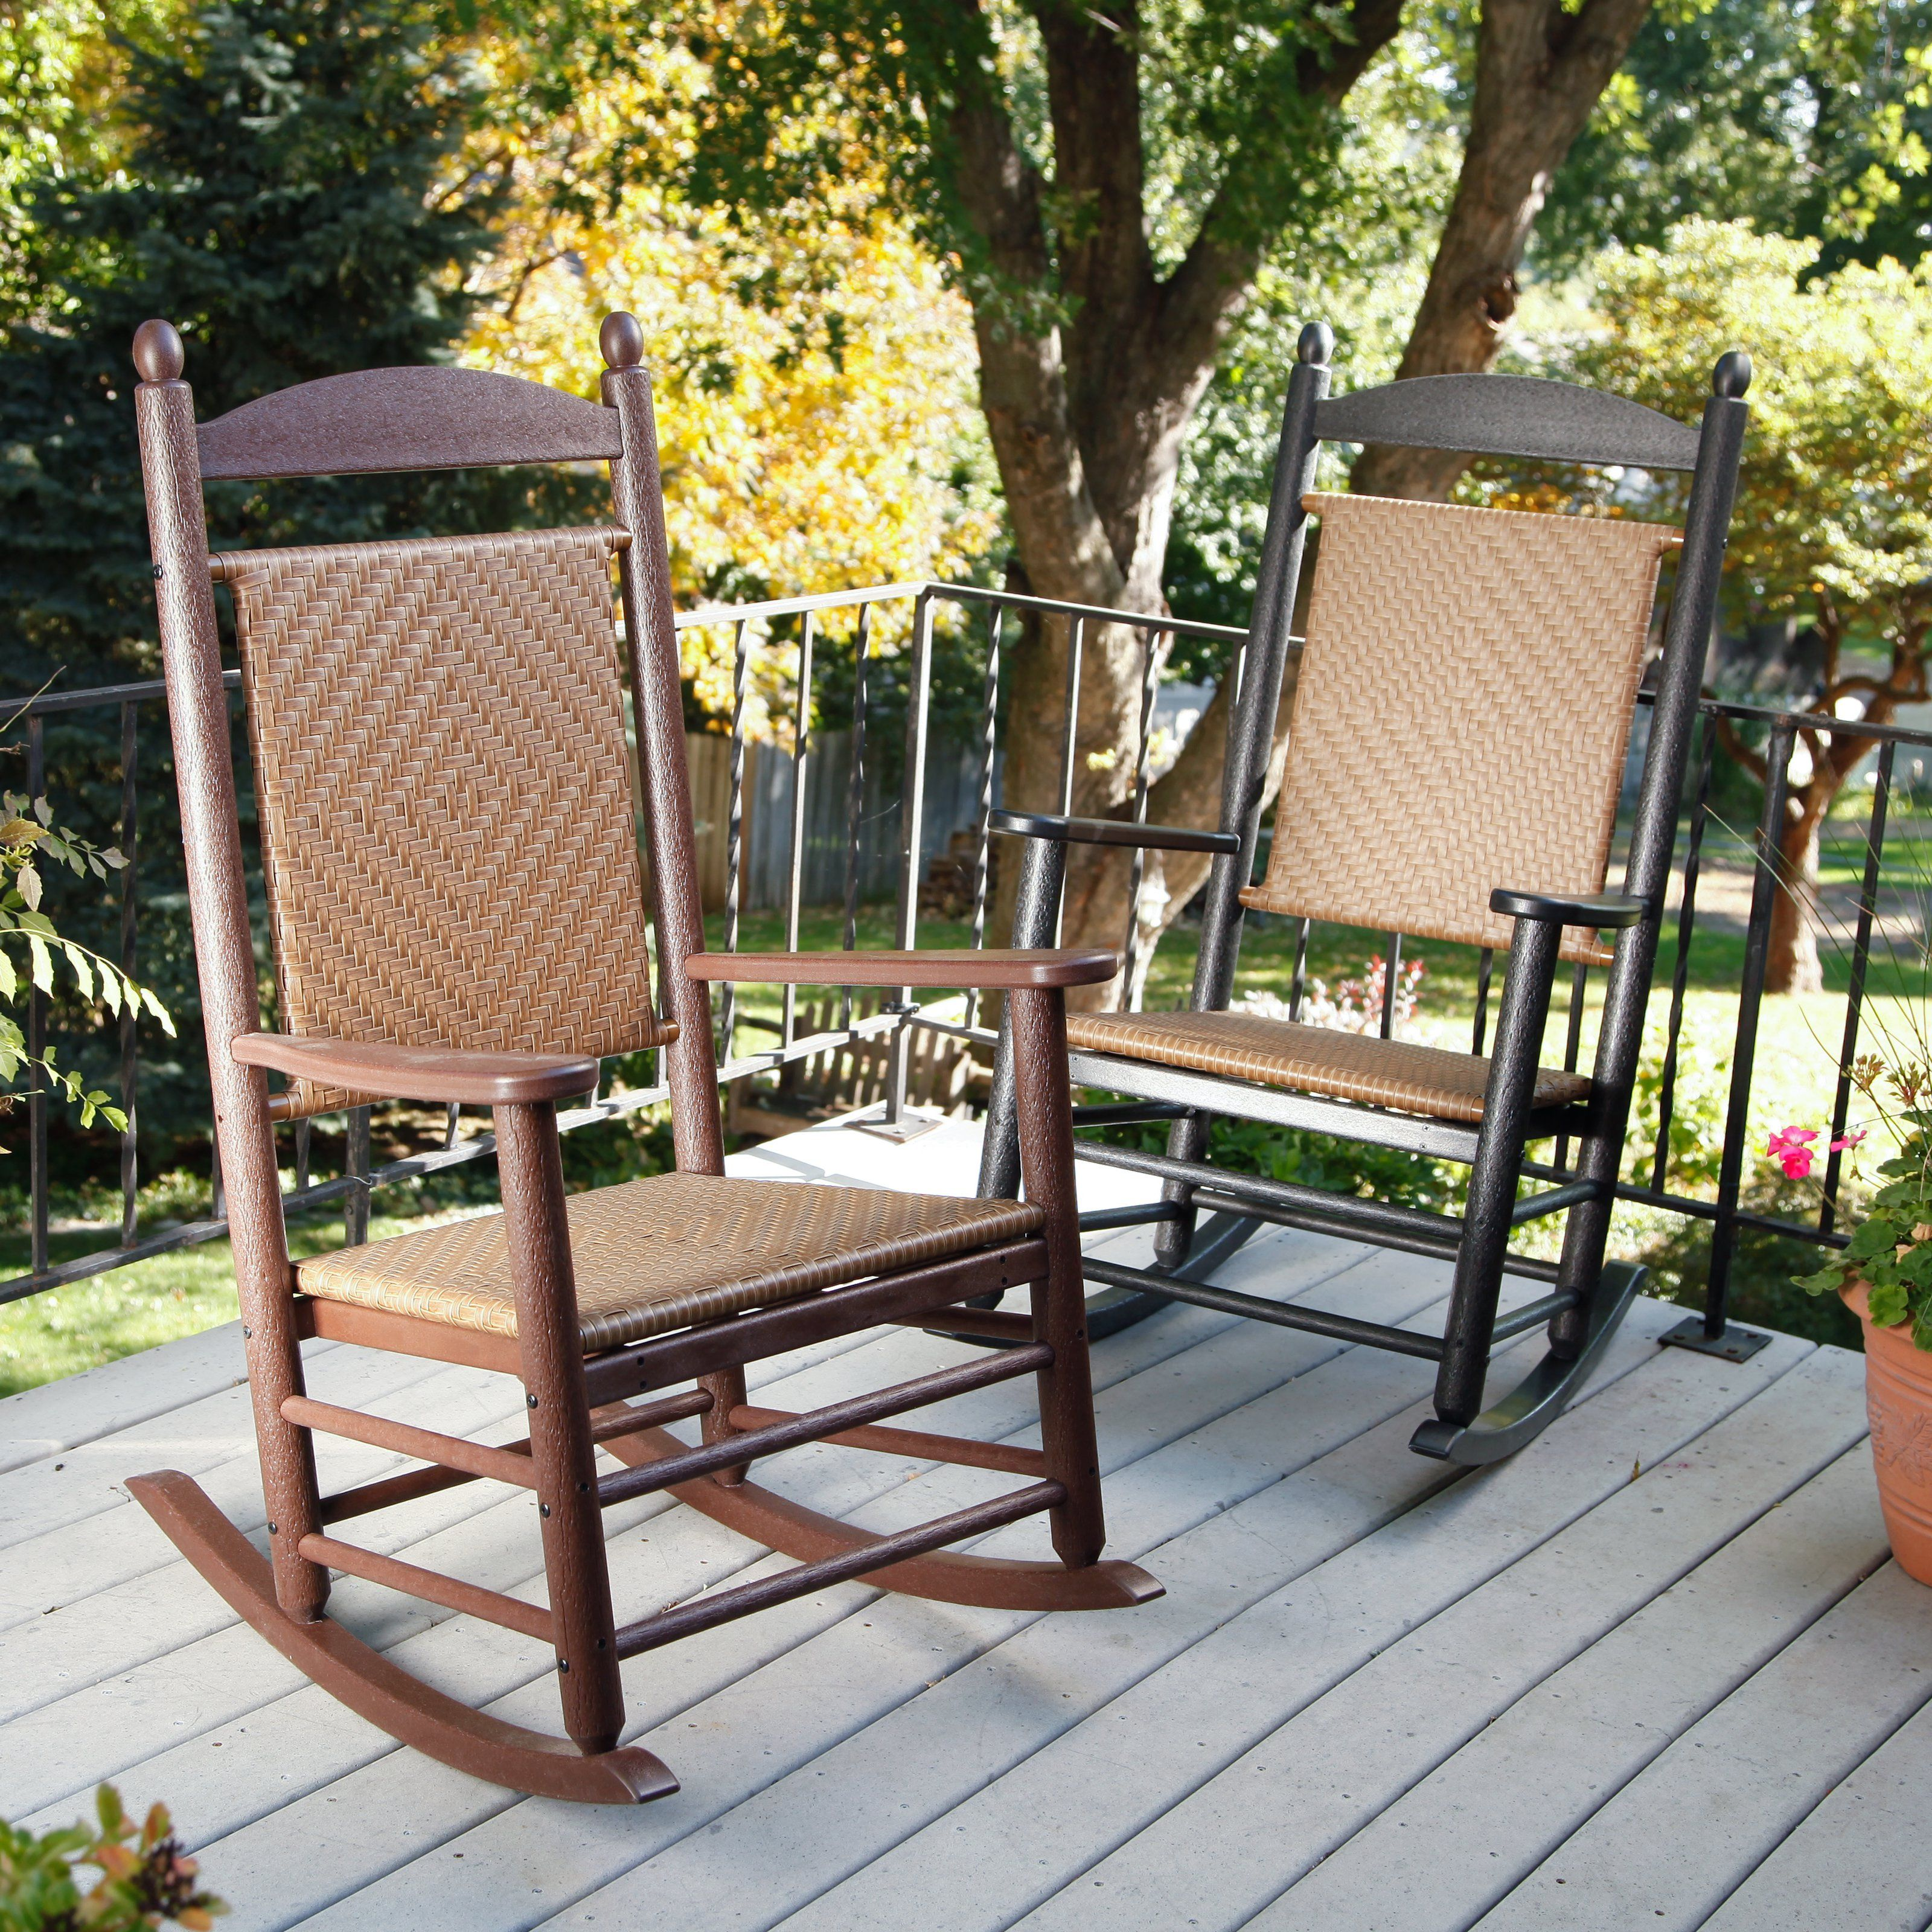 POLYWOOD® Recycled Plastic Jefferson Rocking Chair With Woven Seat And Back  | From Hayneedle.com